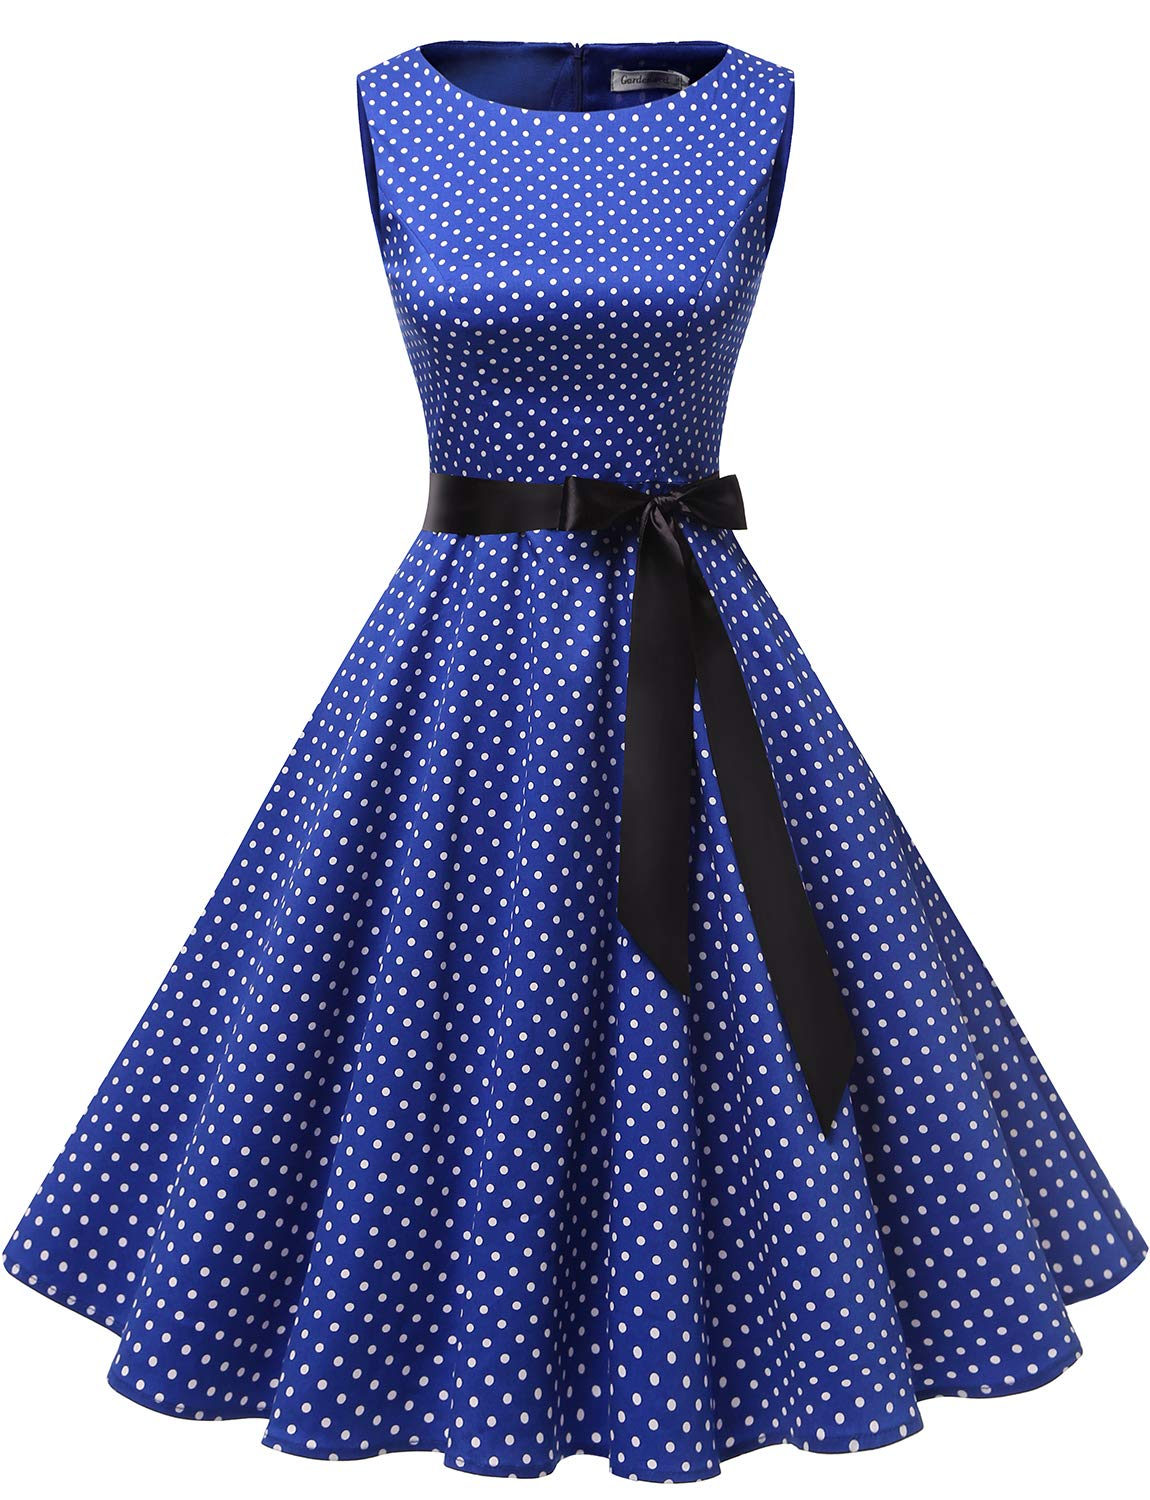 Available at Amazon: Gardenwed Women's Audrey Hepburn Rockabilly Vintage Dress 1950s Retro Cocktail Swing Party Dress